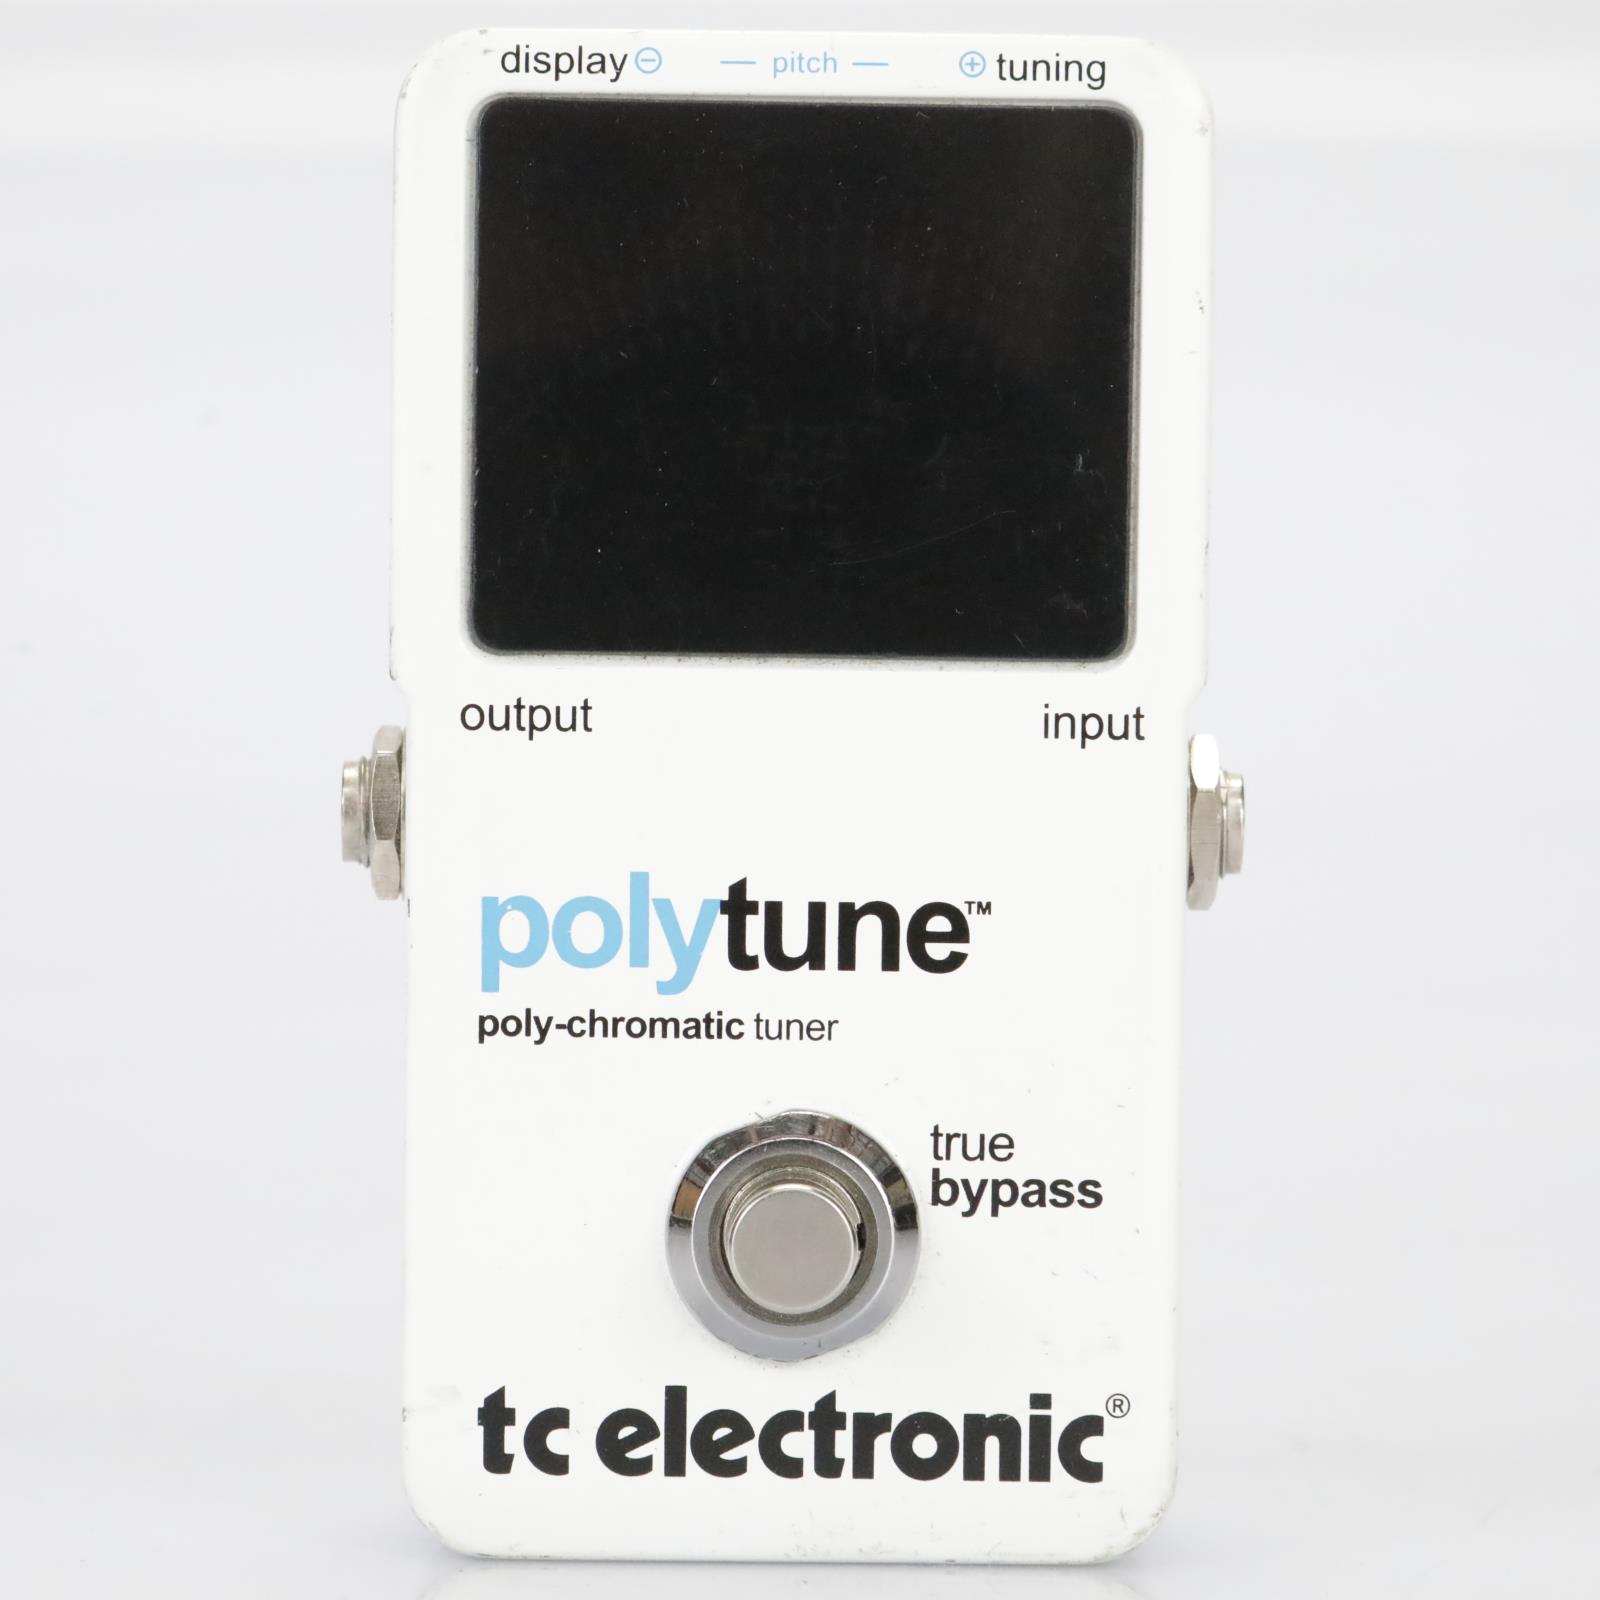 TC Electronic Polytune Poly-Chromatic Tuner Pedal Owned by Leland Sklar #39534